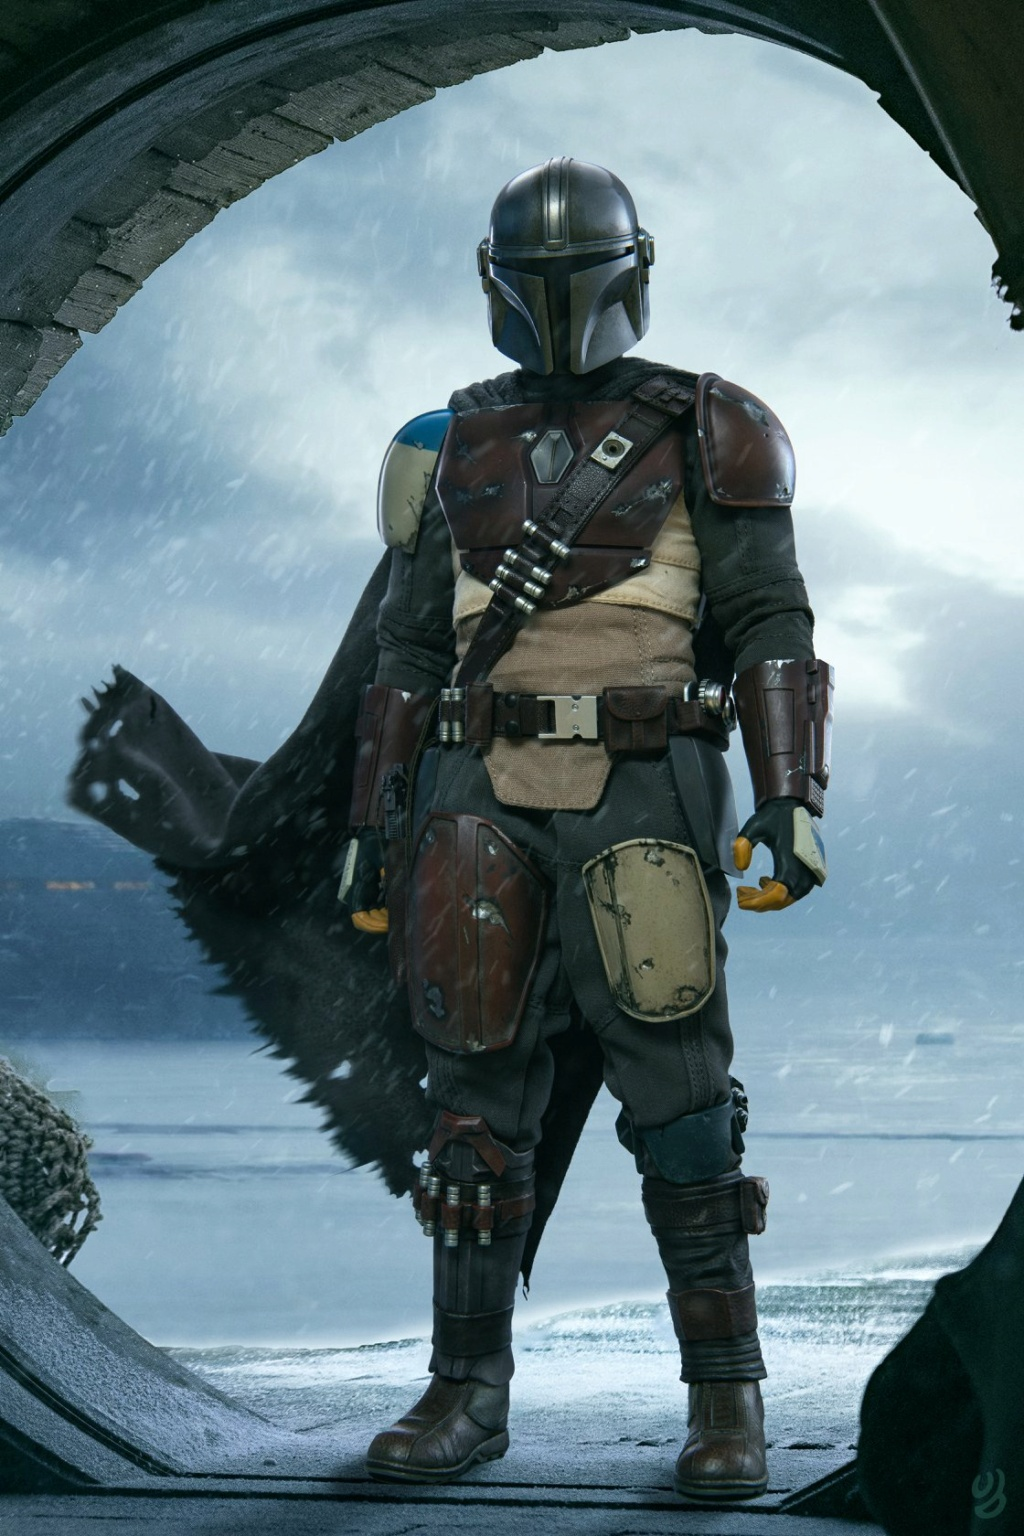 NEW PRODUCT: HOT TOYS: THE MANDALORIAN -- THE MANDALORIAN 1/6TH SCALE COLLECTIBLE FIGURE 23125